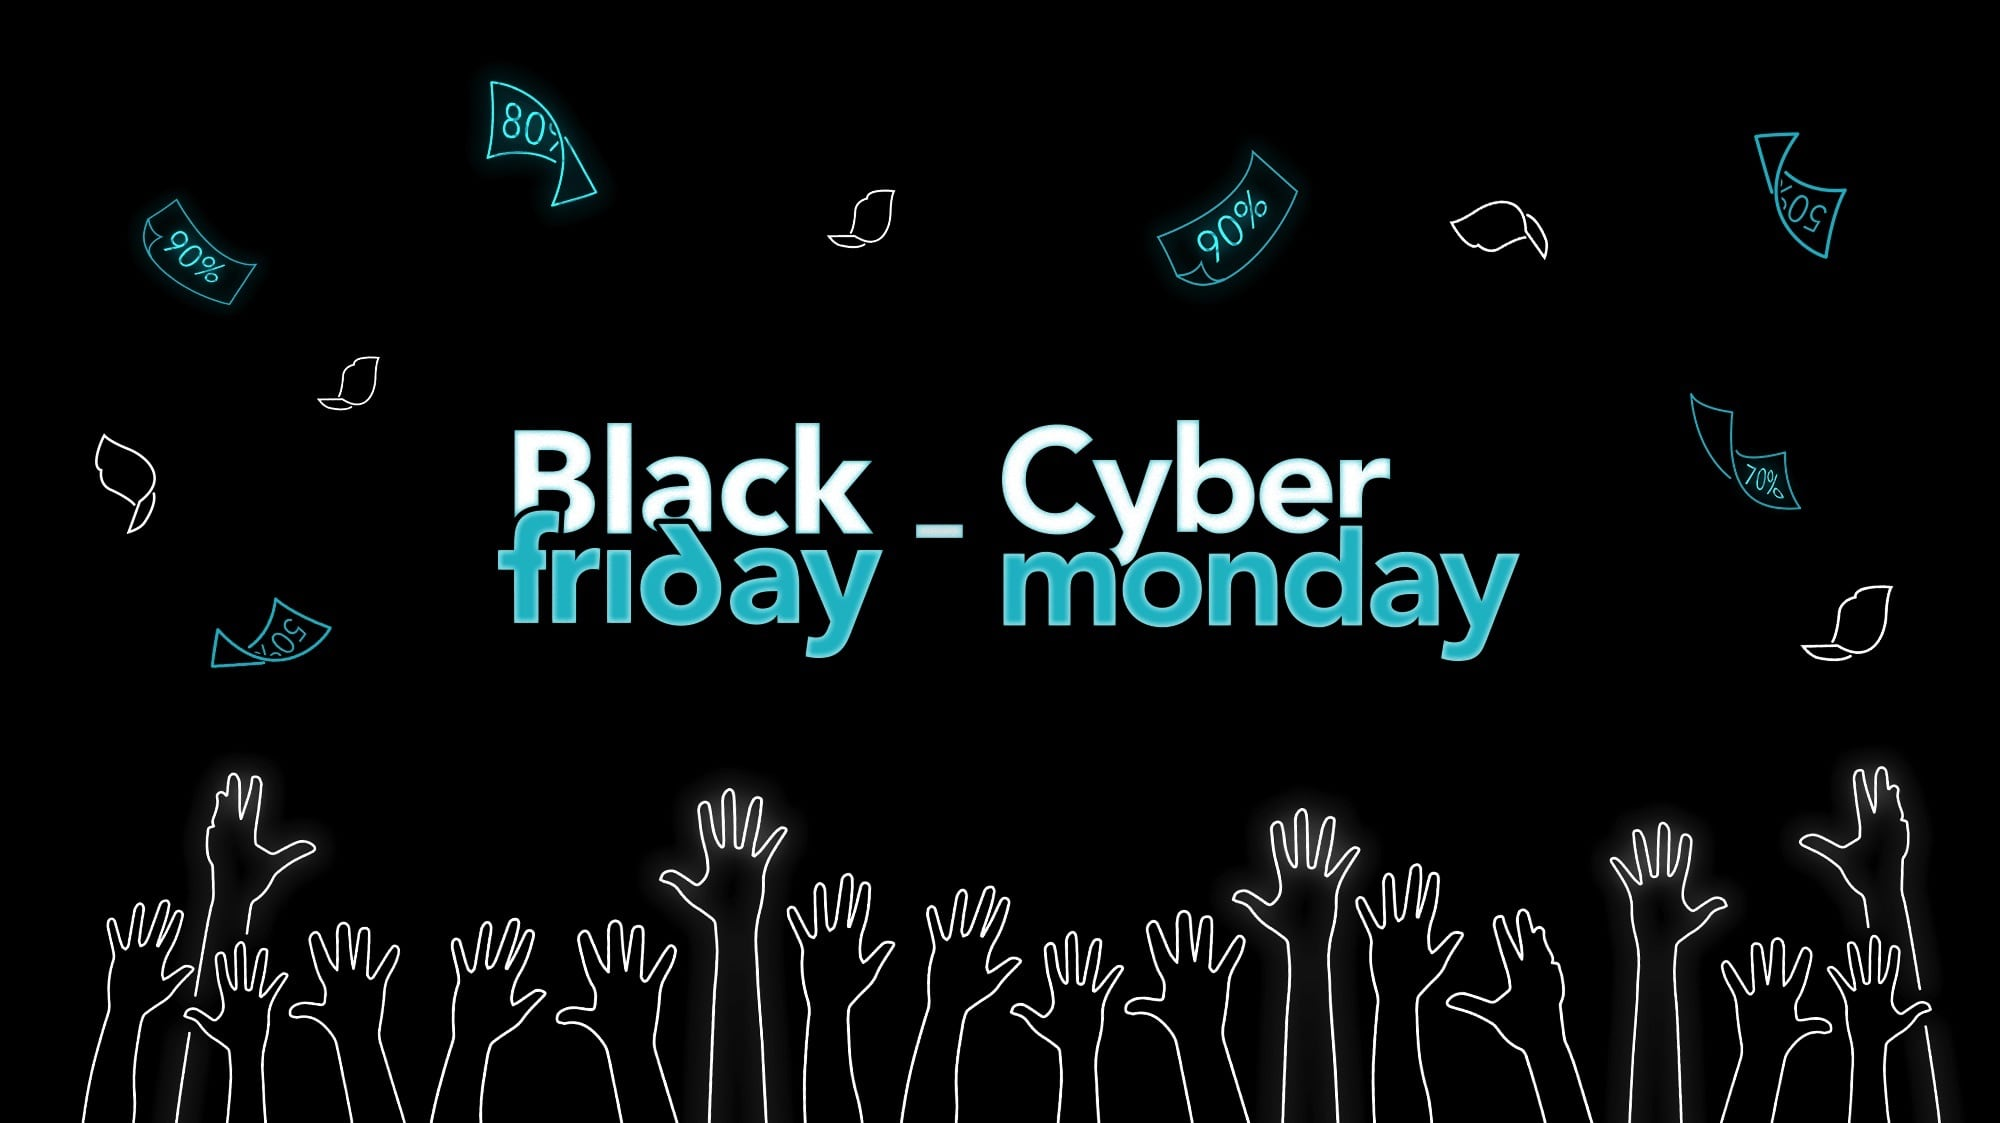 Leflair Black Friday Featured Image